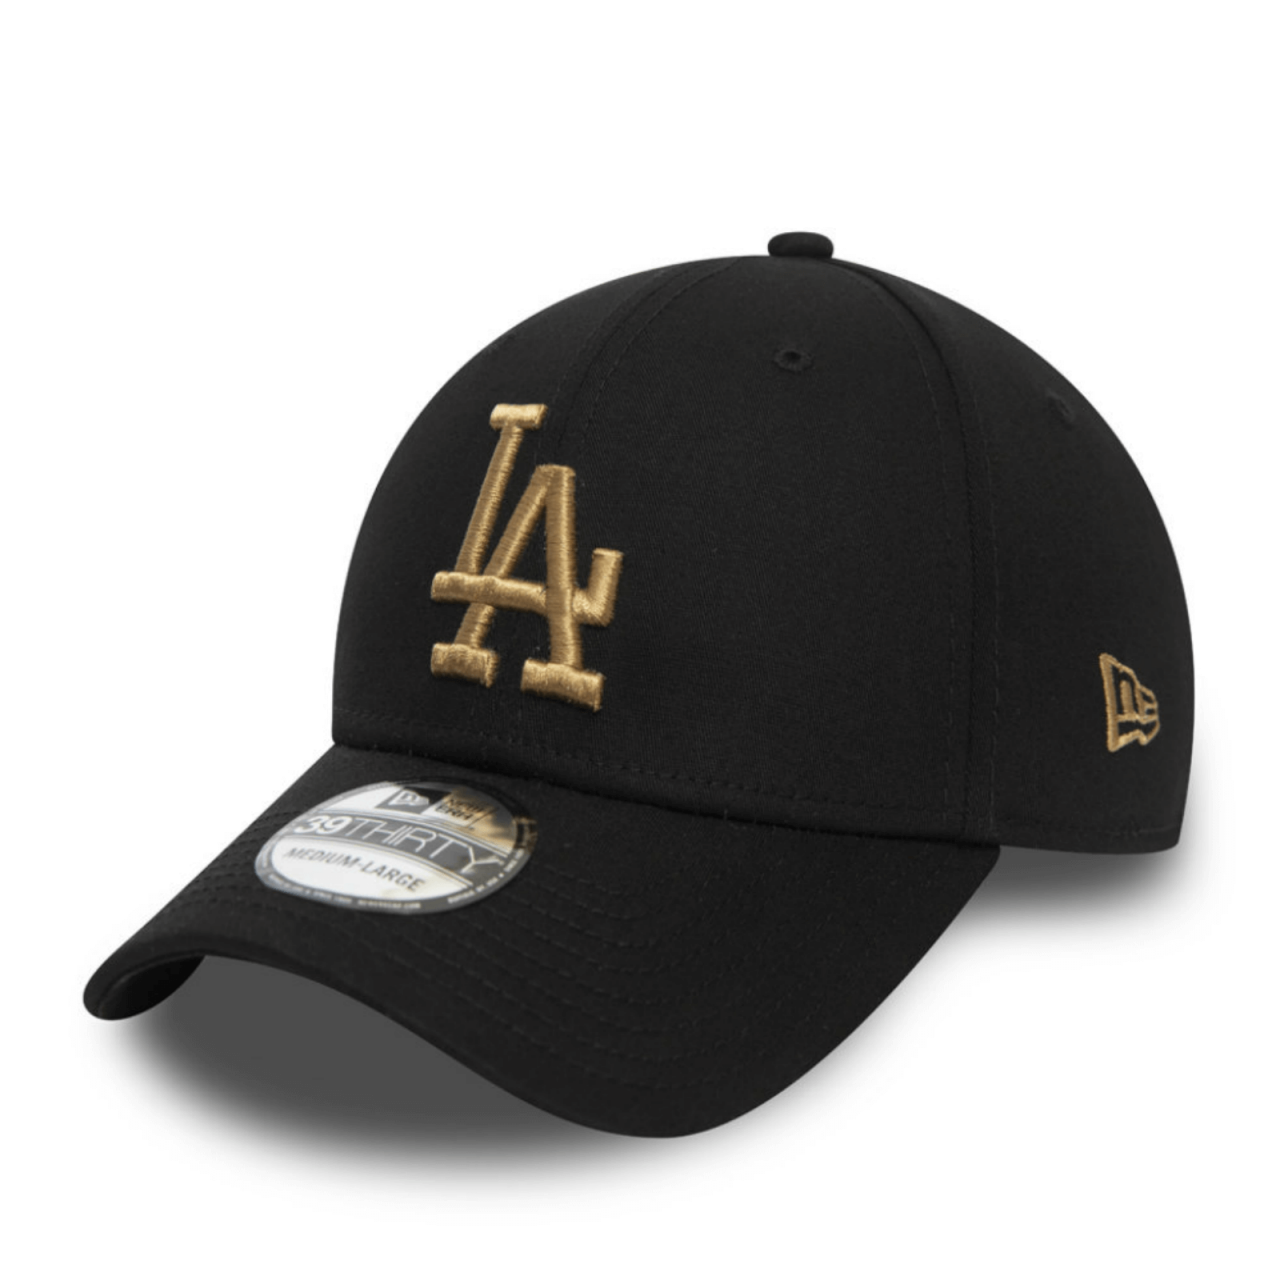 39THIRTY LEAGUE ESSENTIAL LOS ANGELES DODGERS BLACK CAP